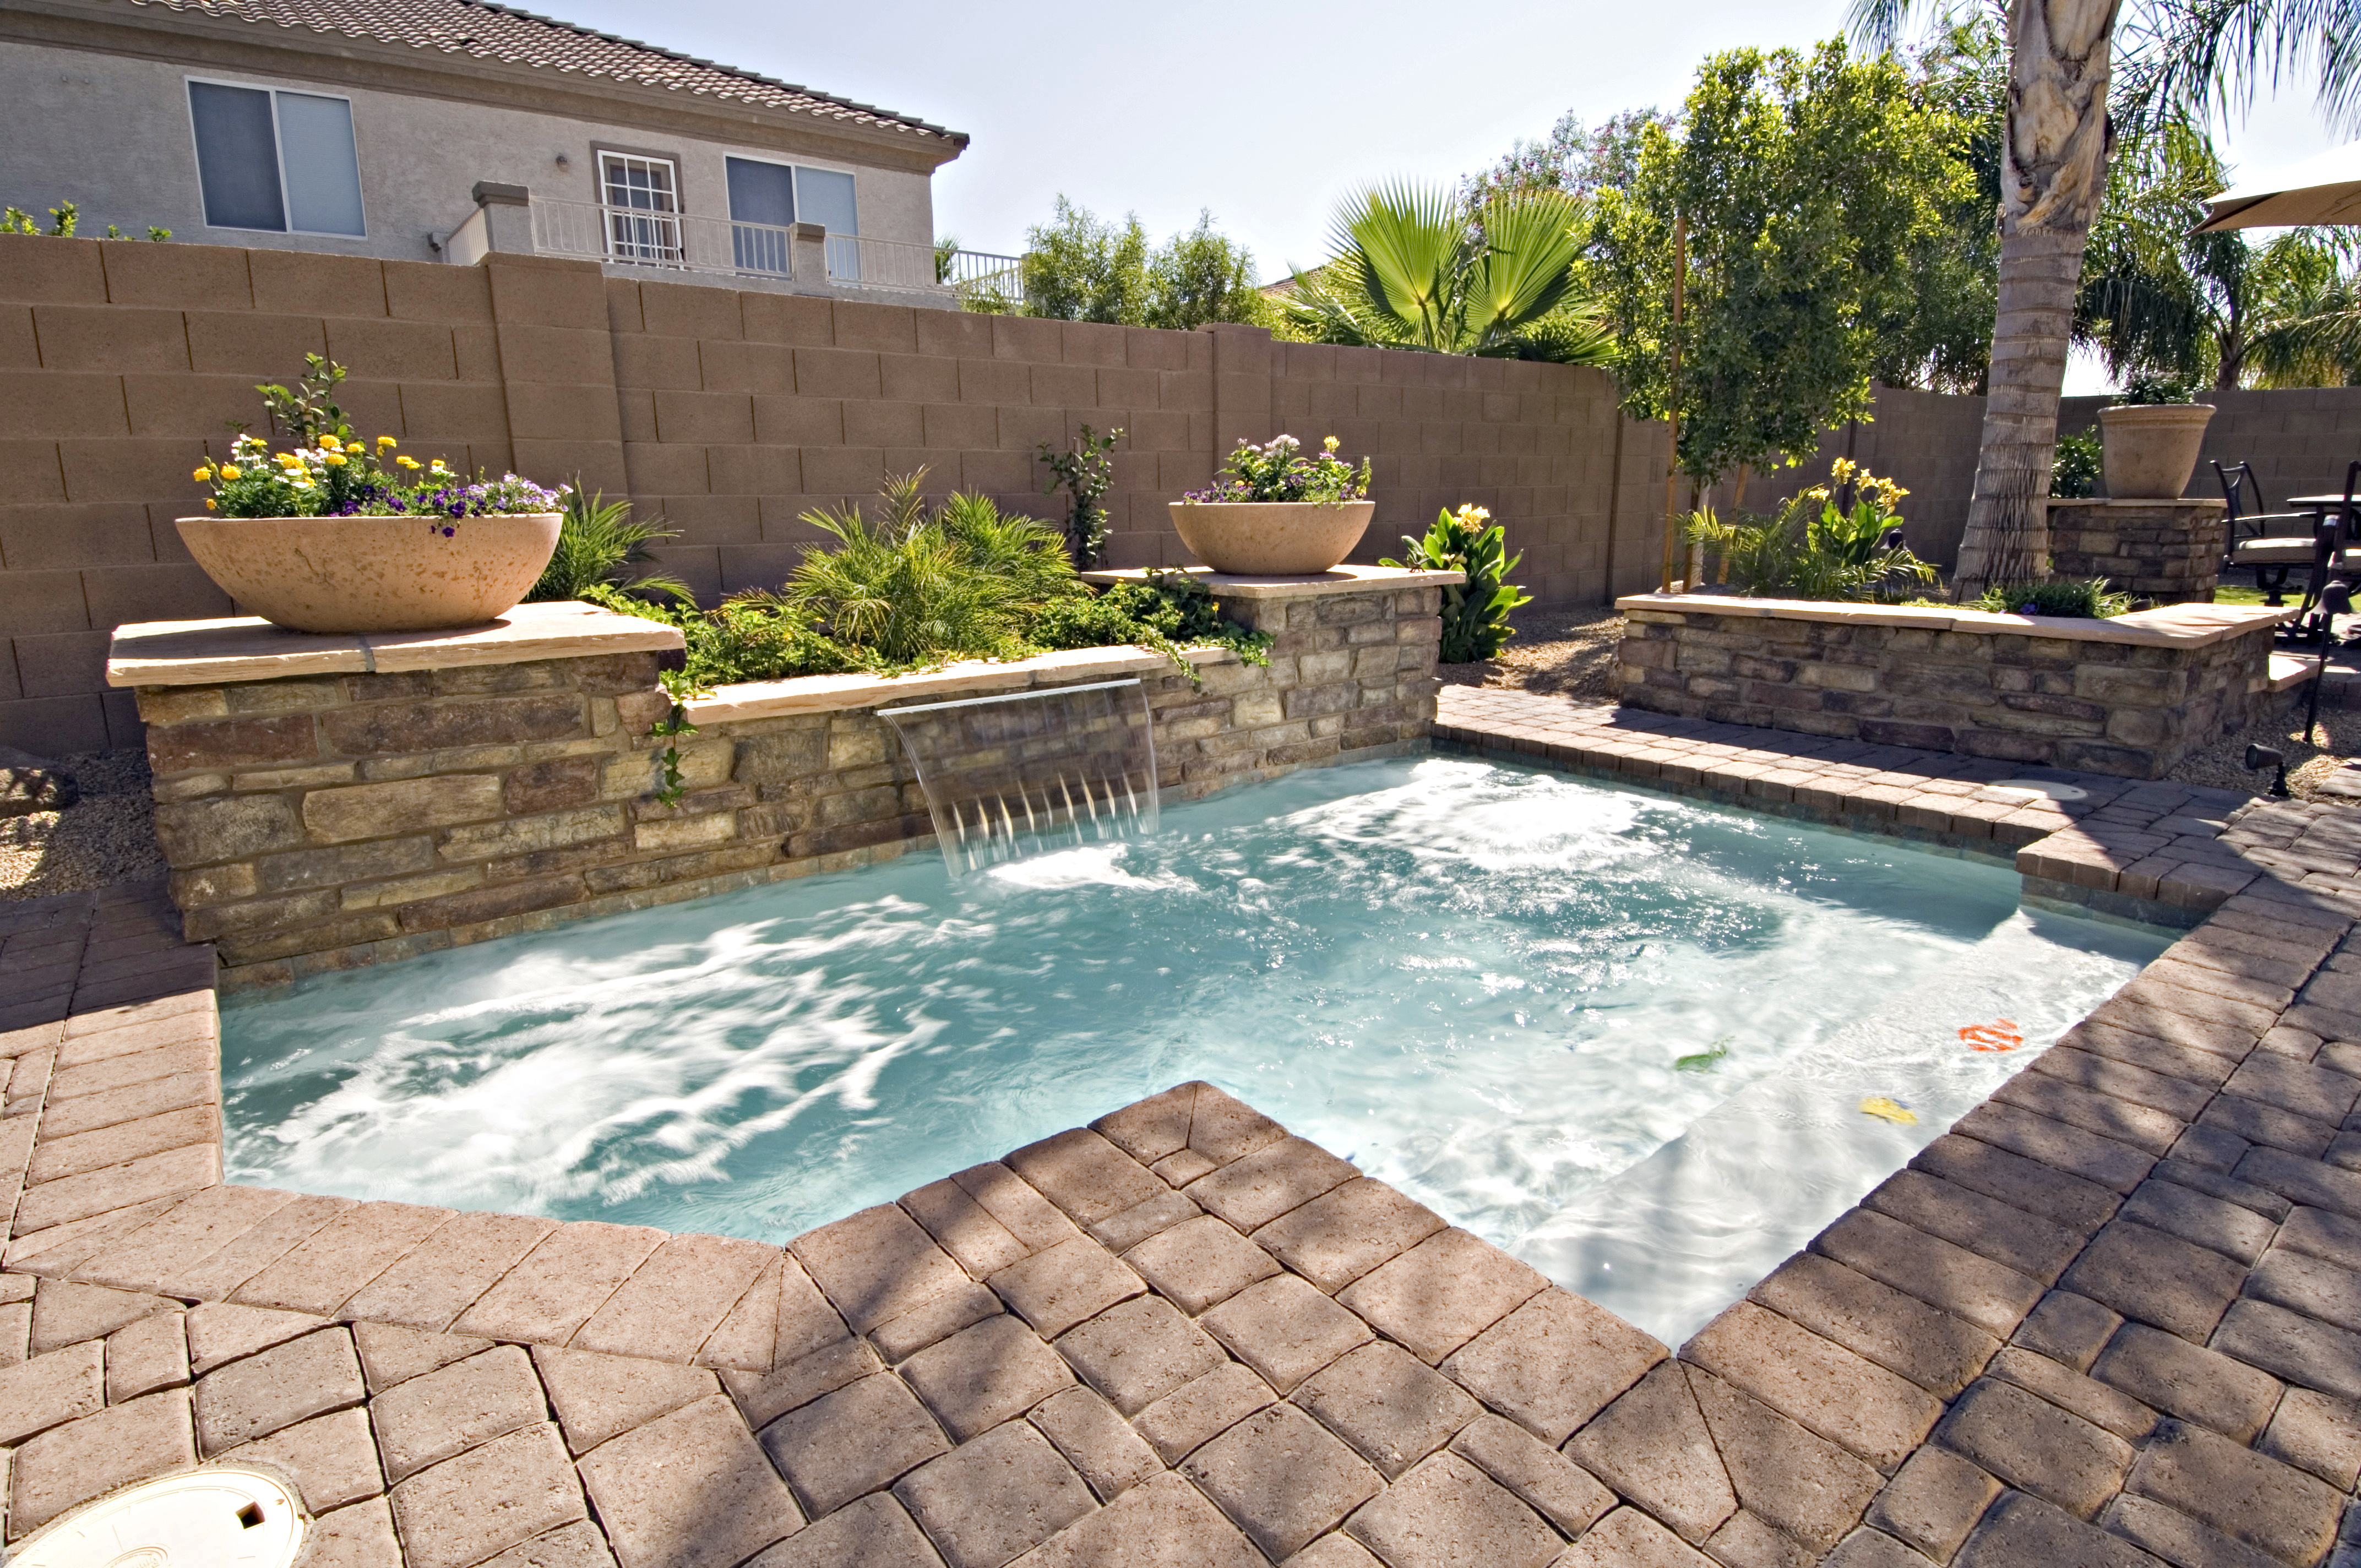 swimming pool designs small yards photo - 3